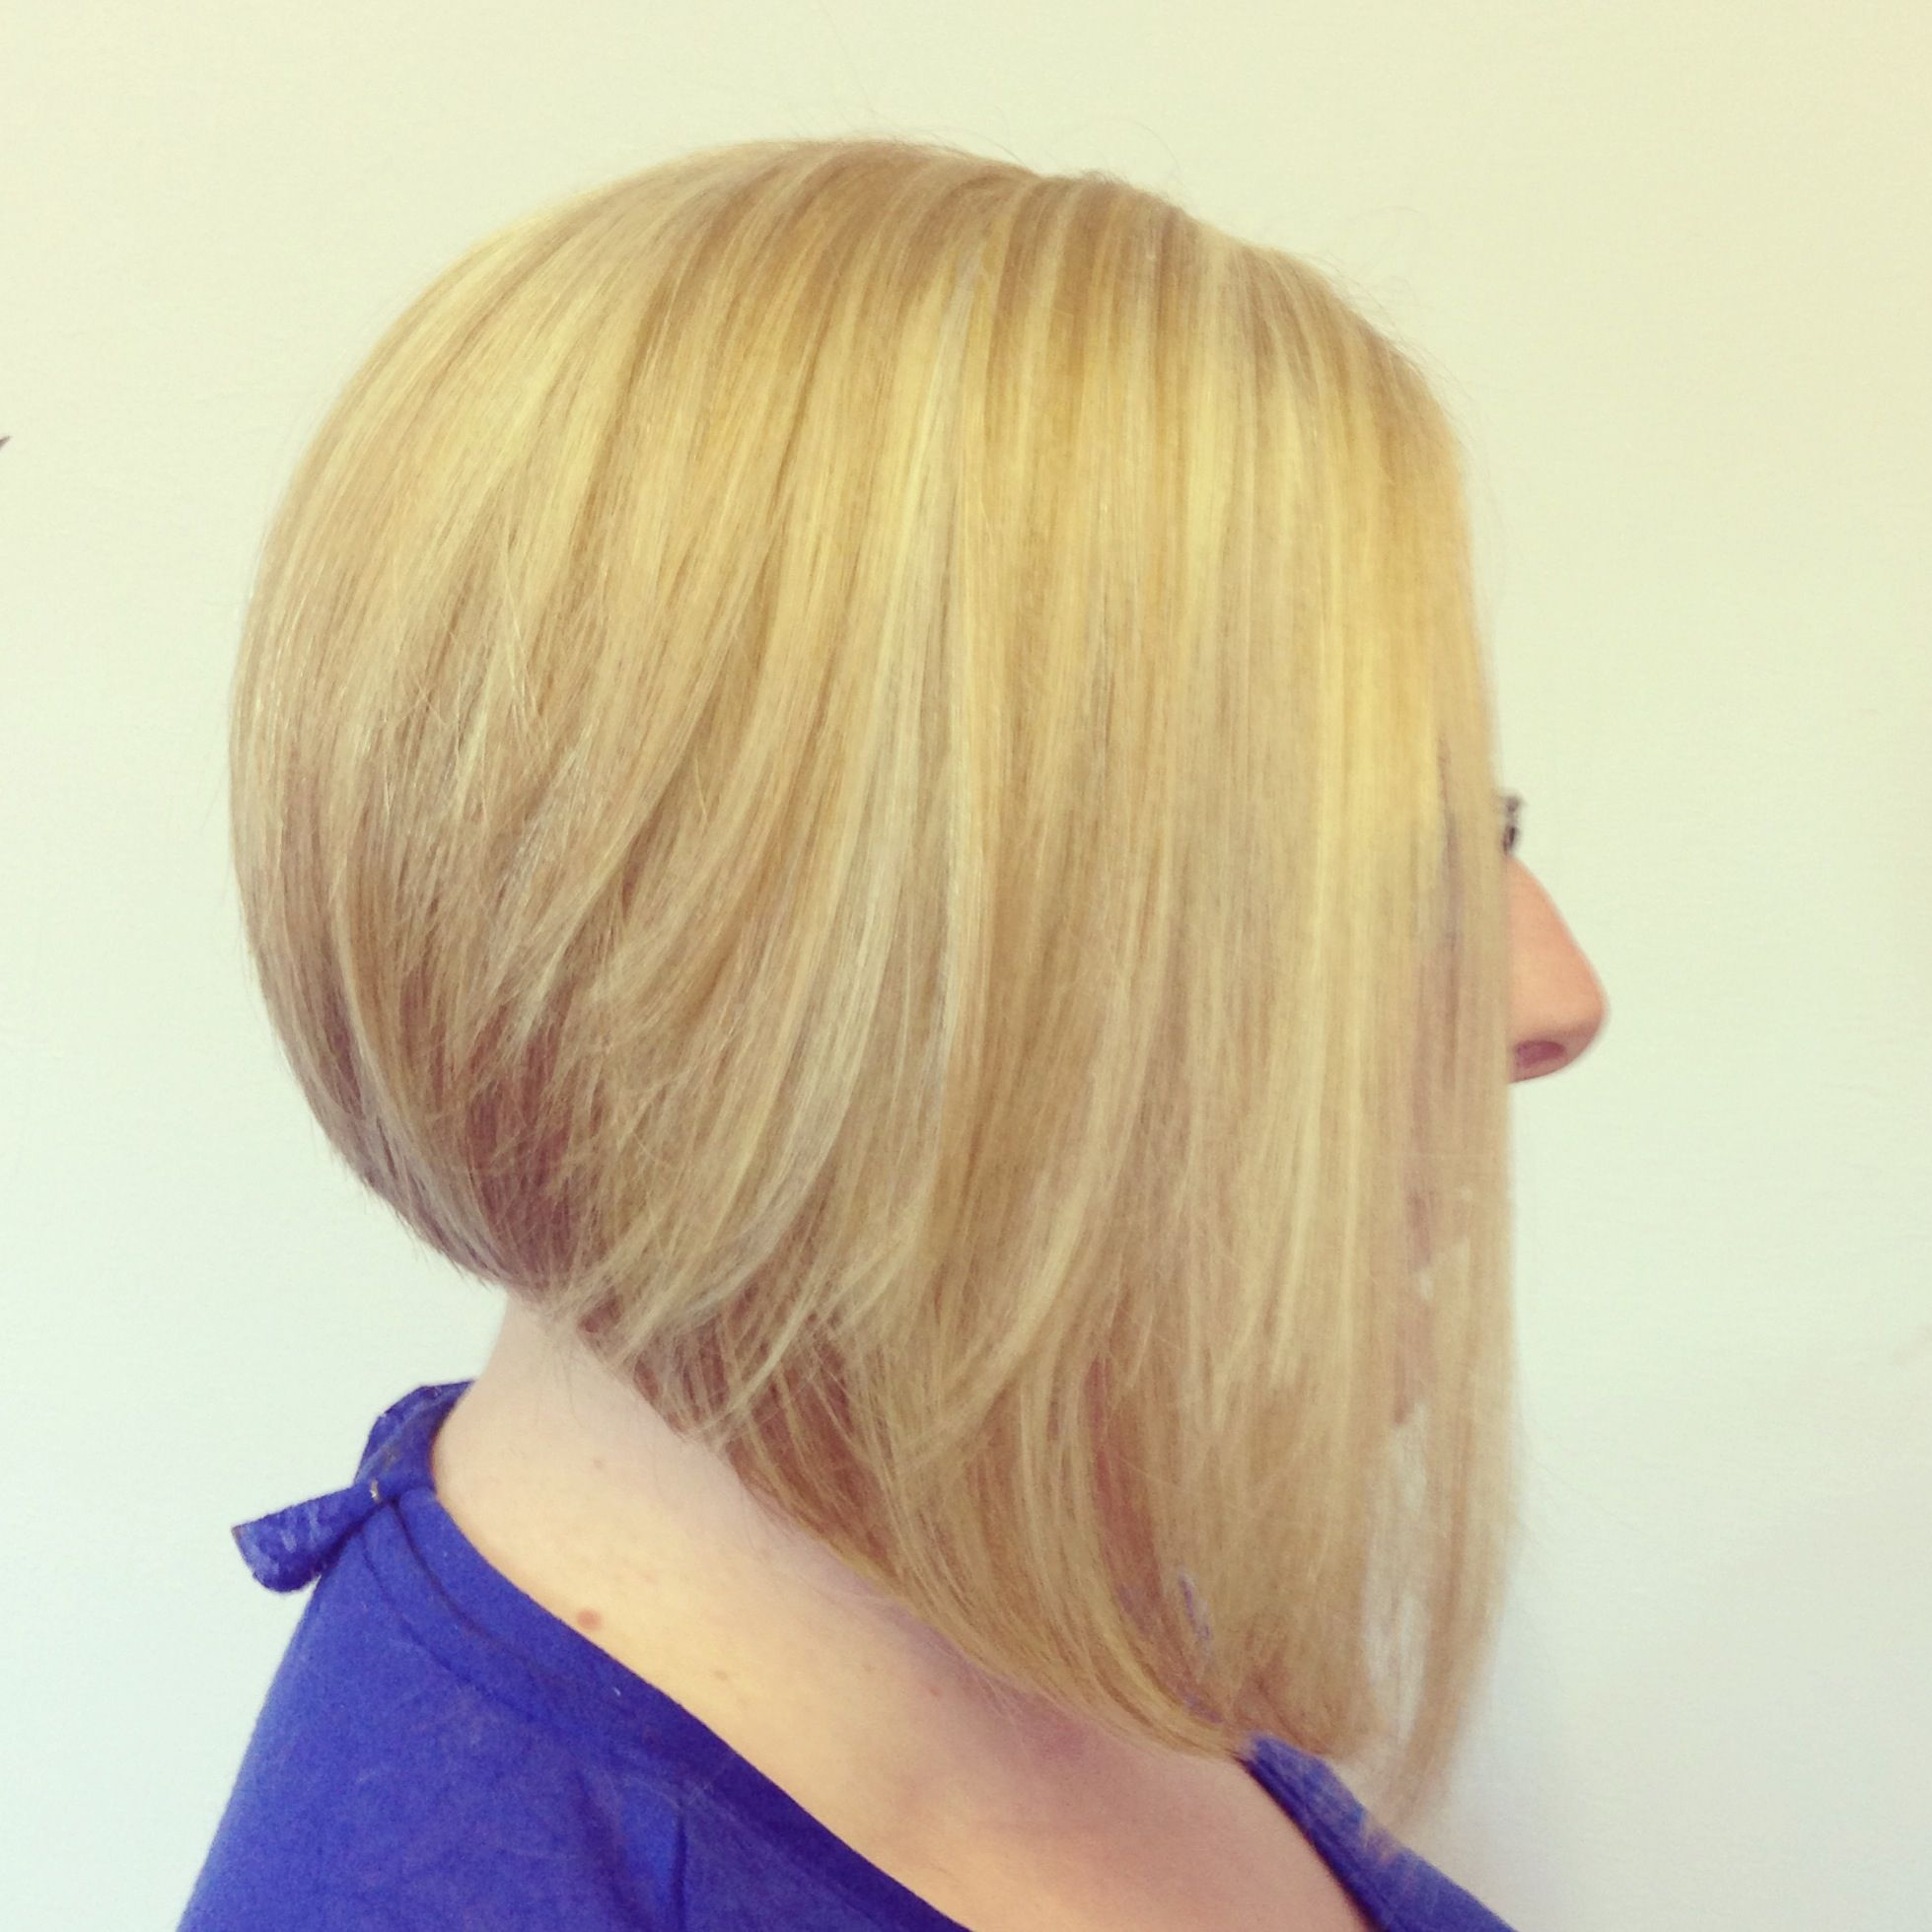 Graduated Bob Blonde Highlights Short Hair Cut Colour